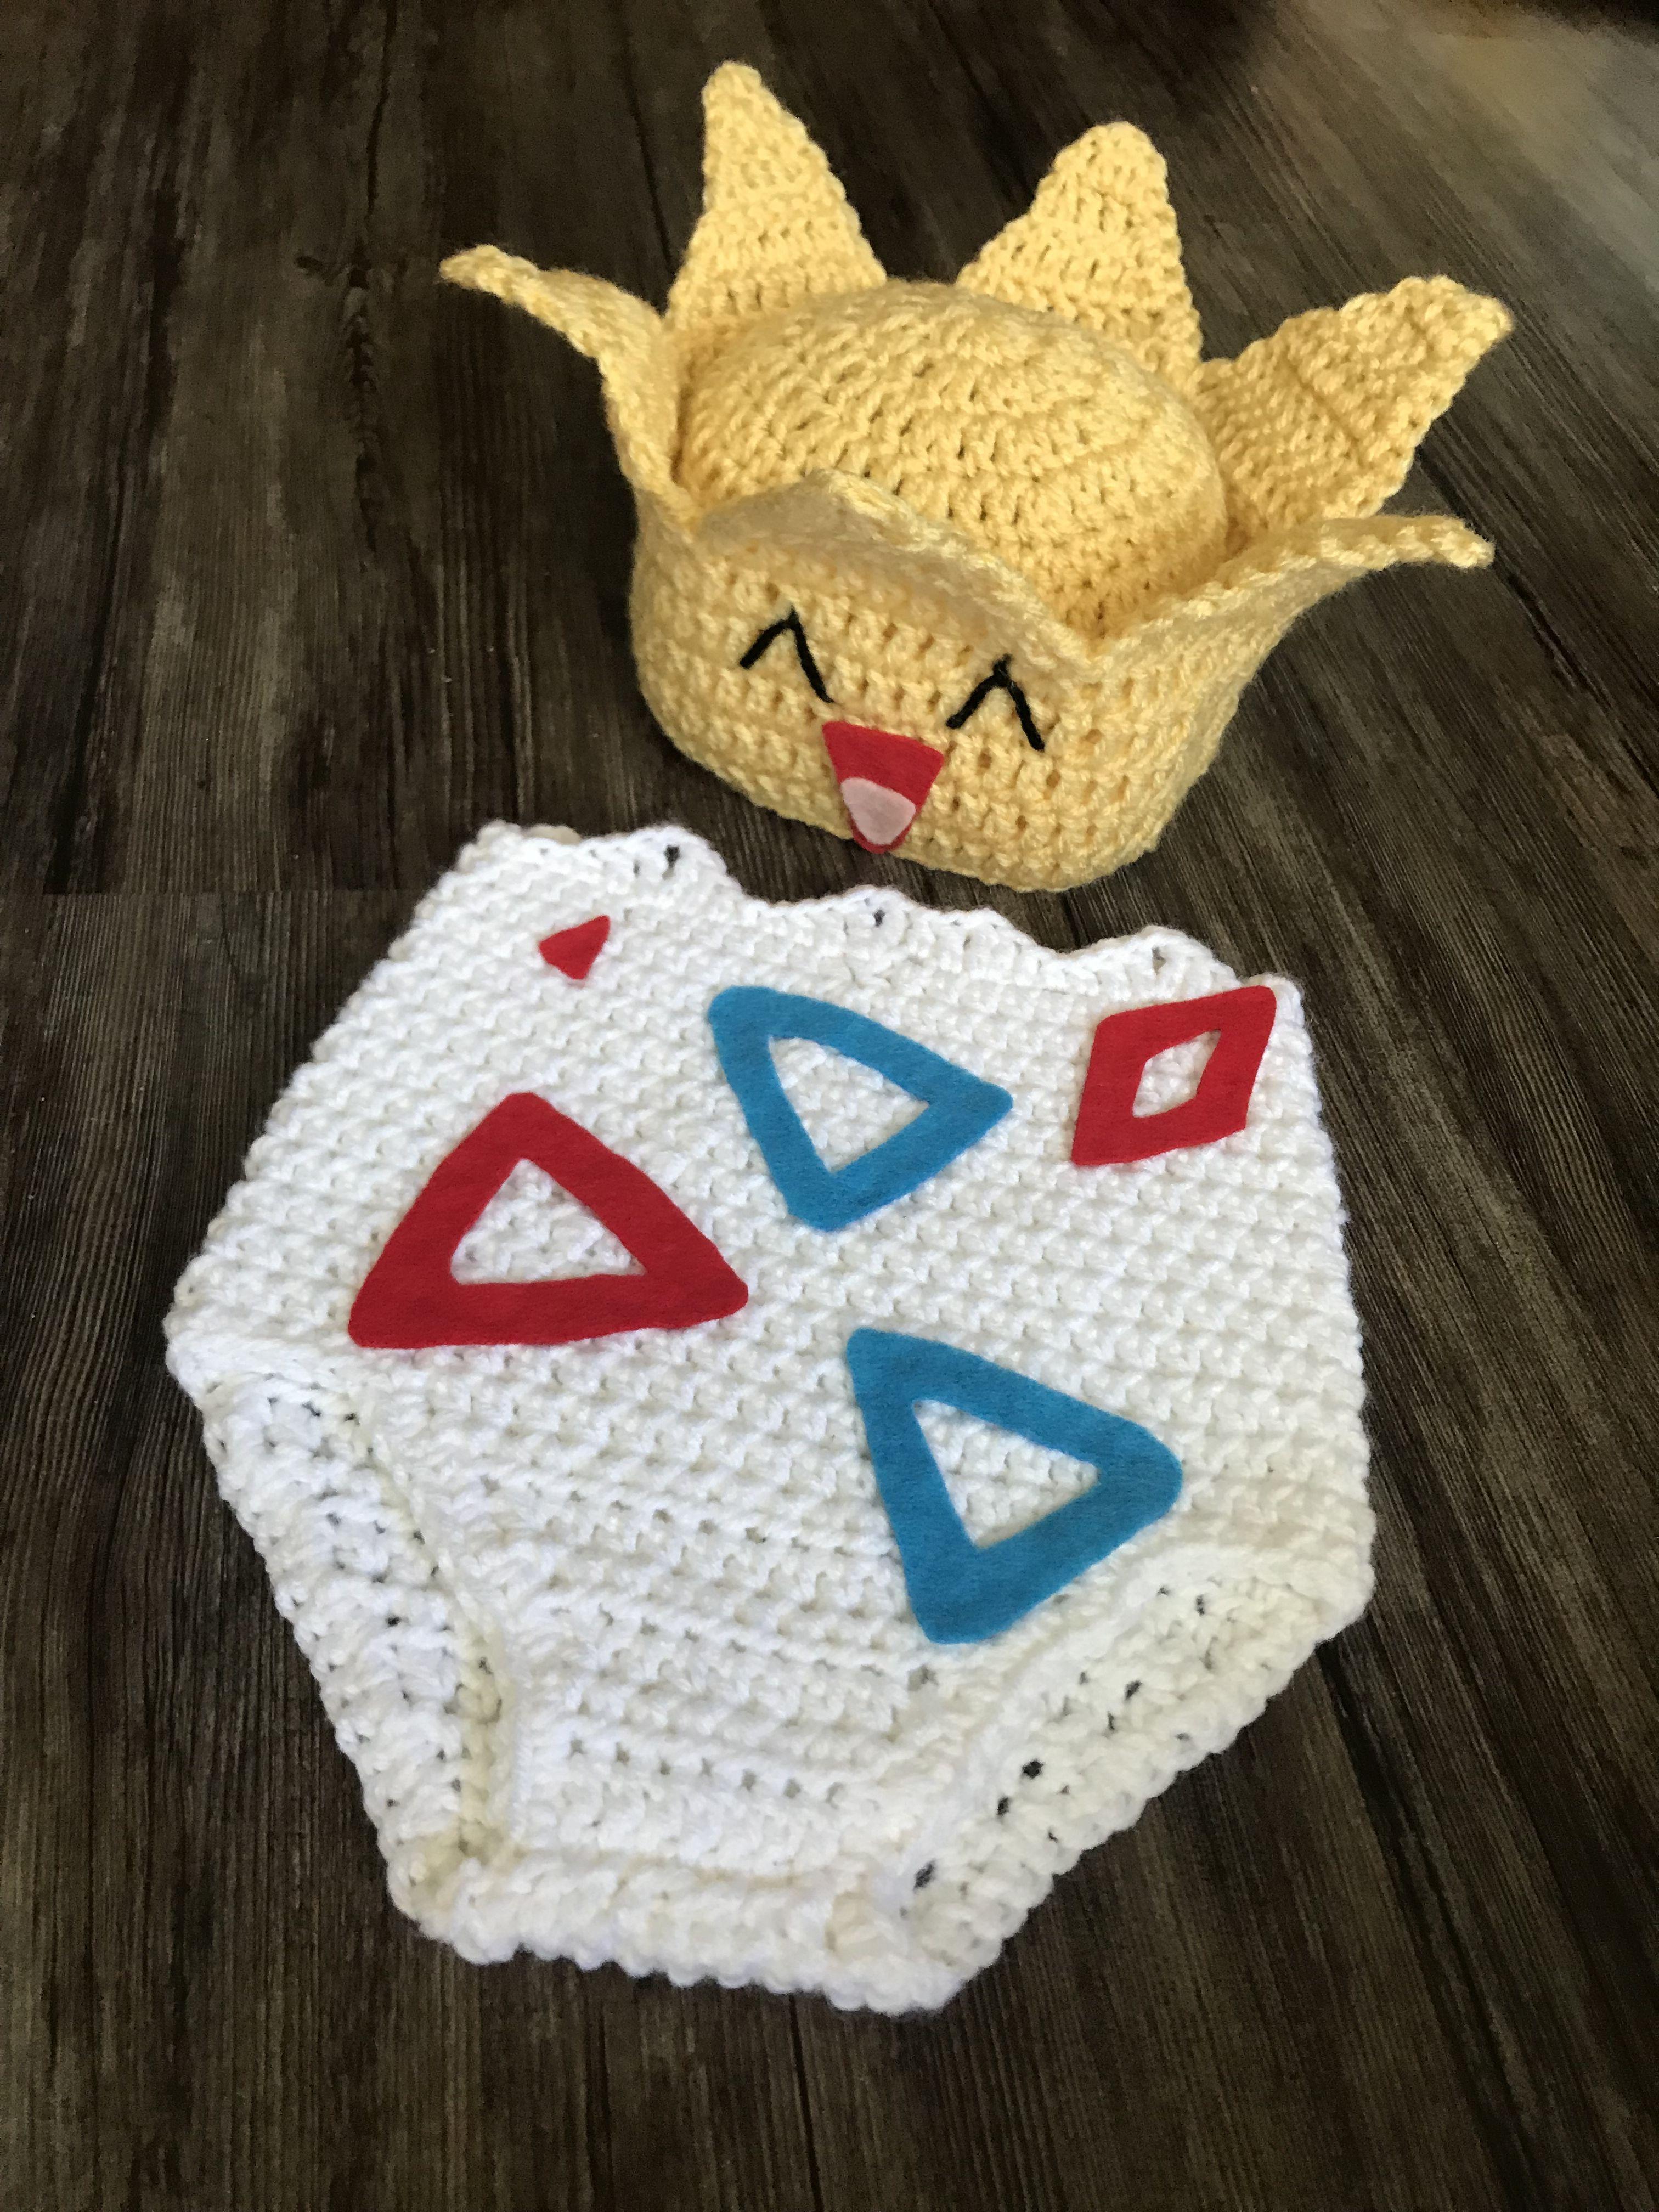 Handmade crochet Pokemon hat inspired Pokeball newborn to adult sizes handmade with or without earflaps option